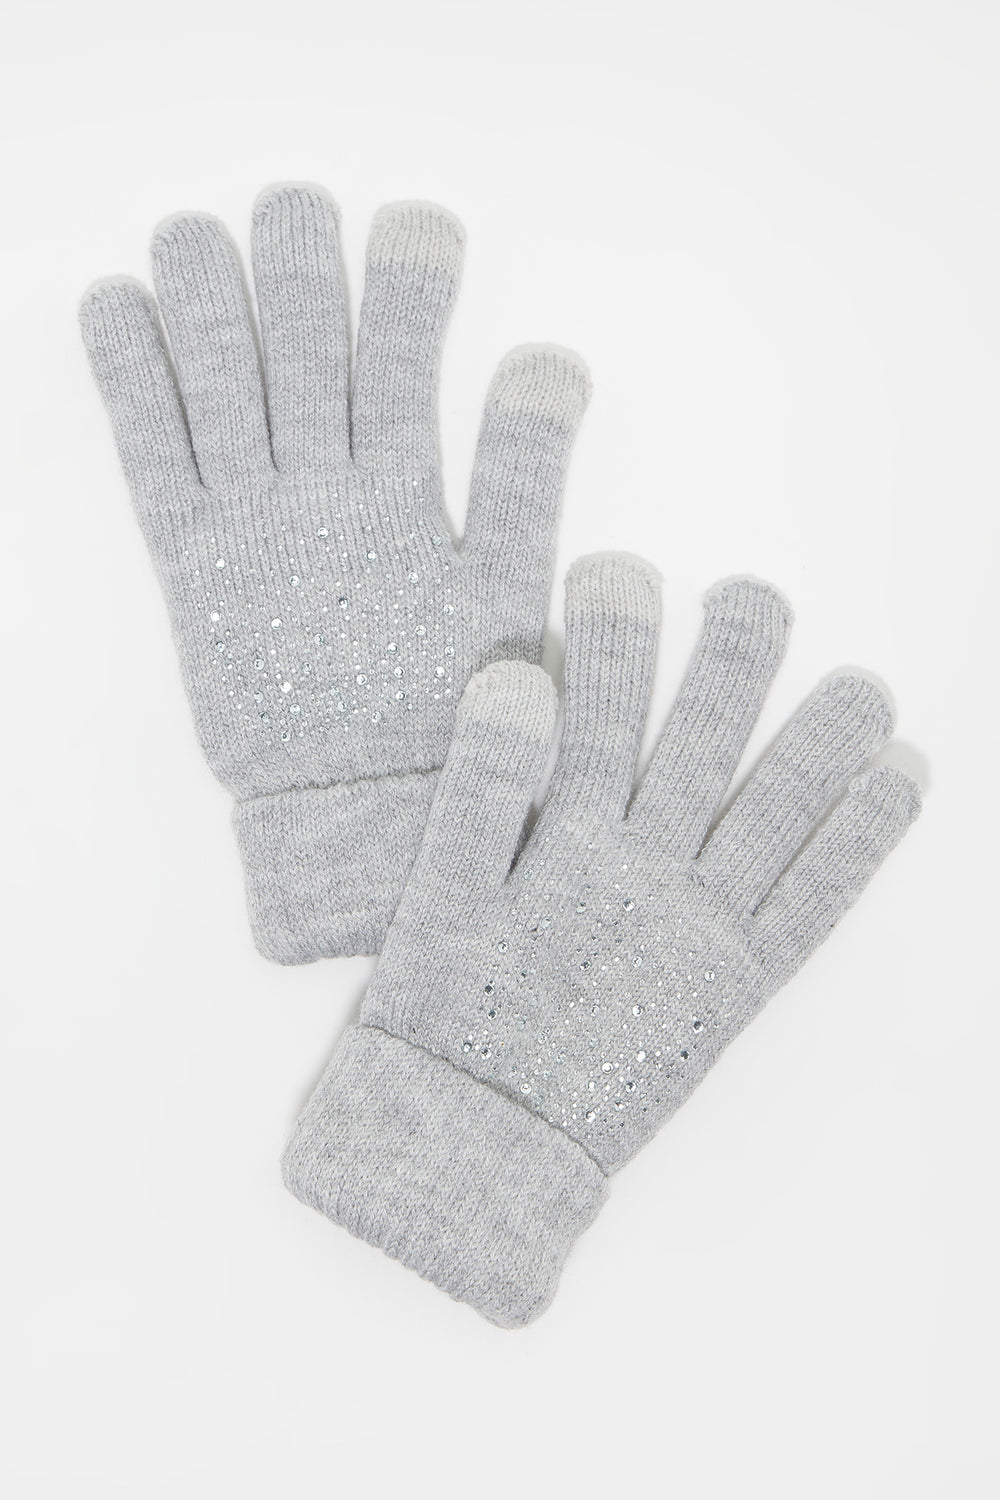 Knit Rhinestone Touchscreen Glove Heather Grey